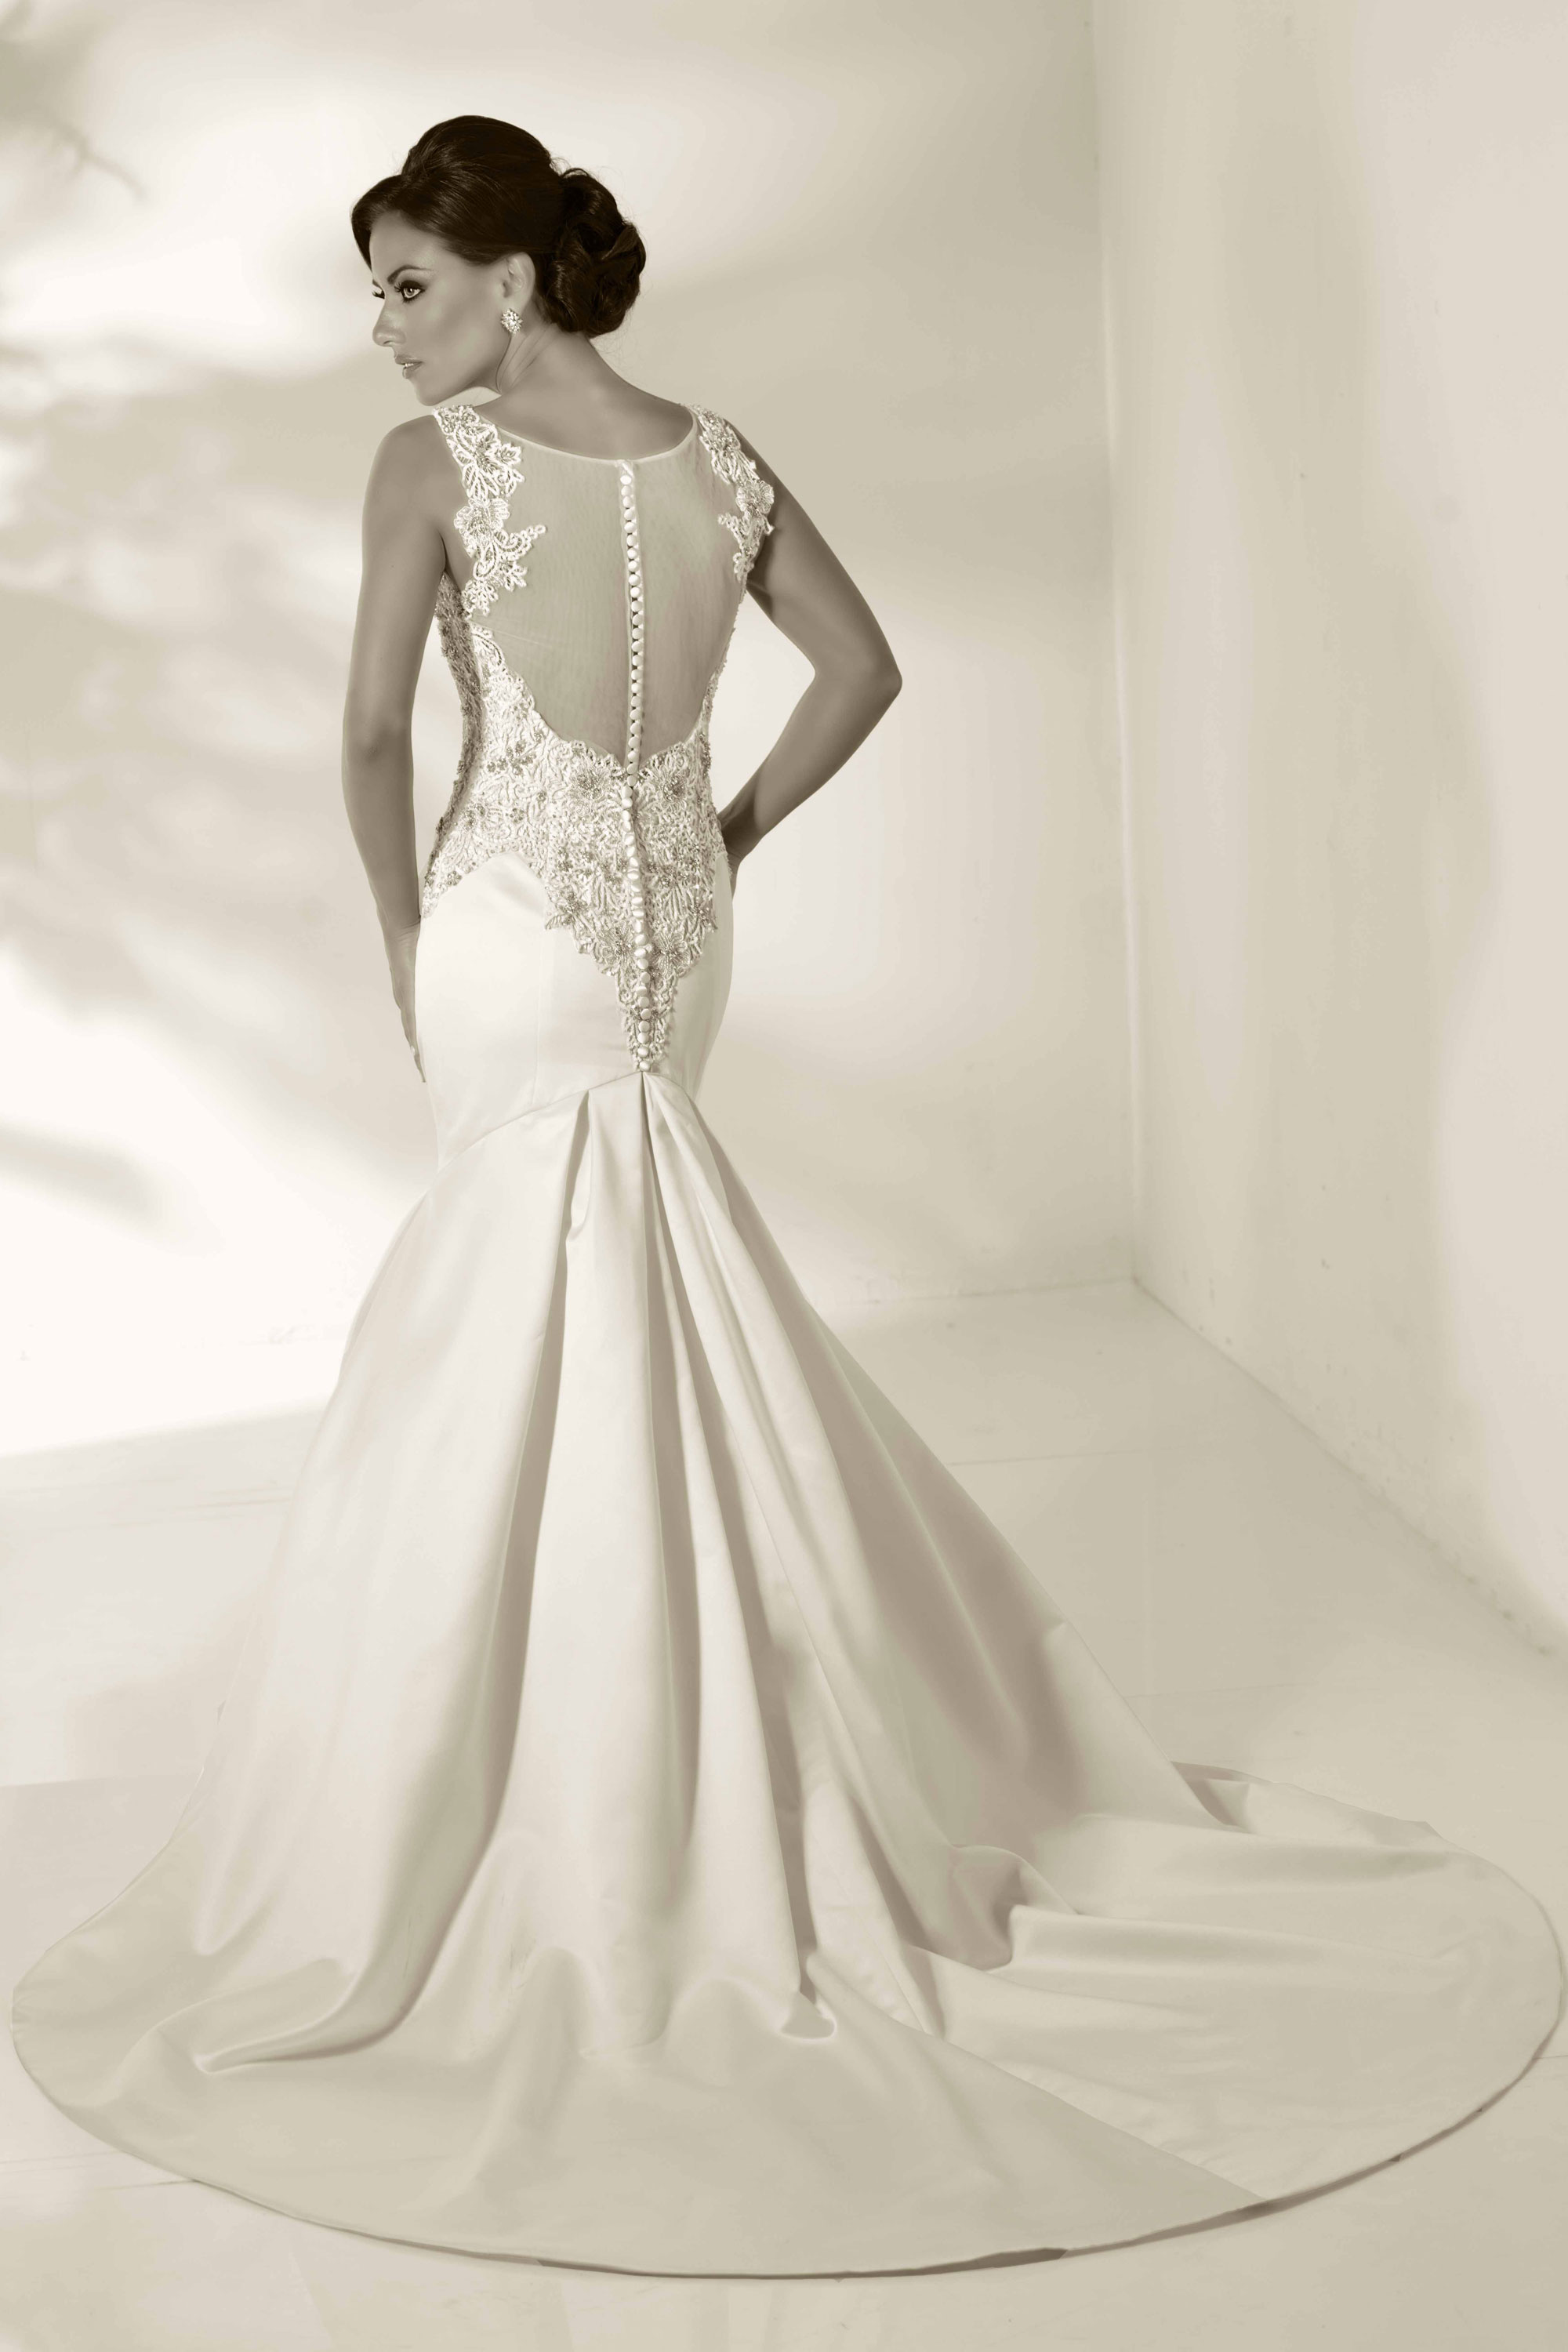 cristiano-lucci-wedding-dresses-16-01052014